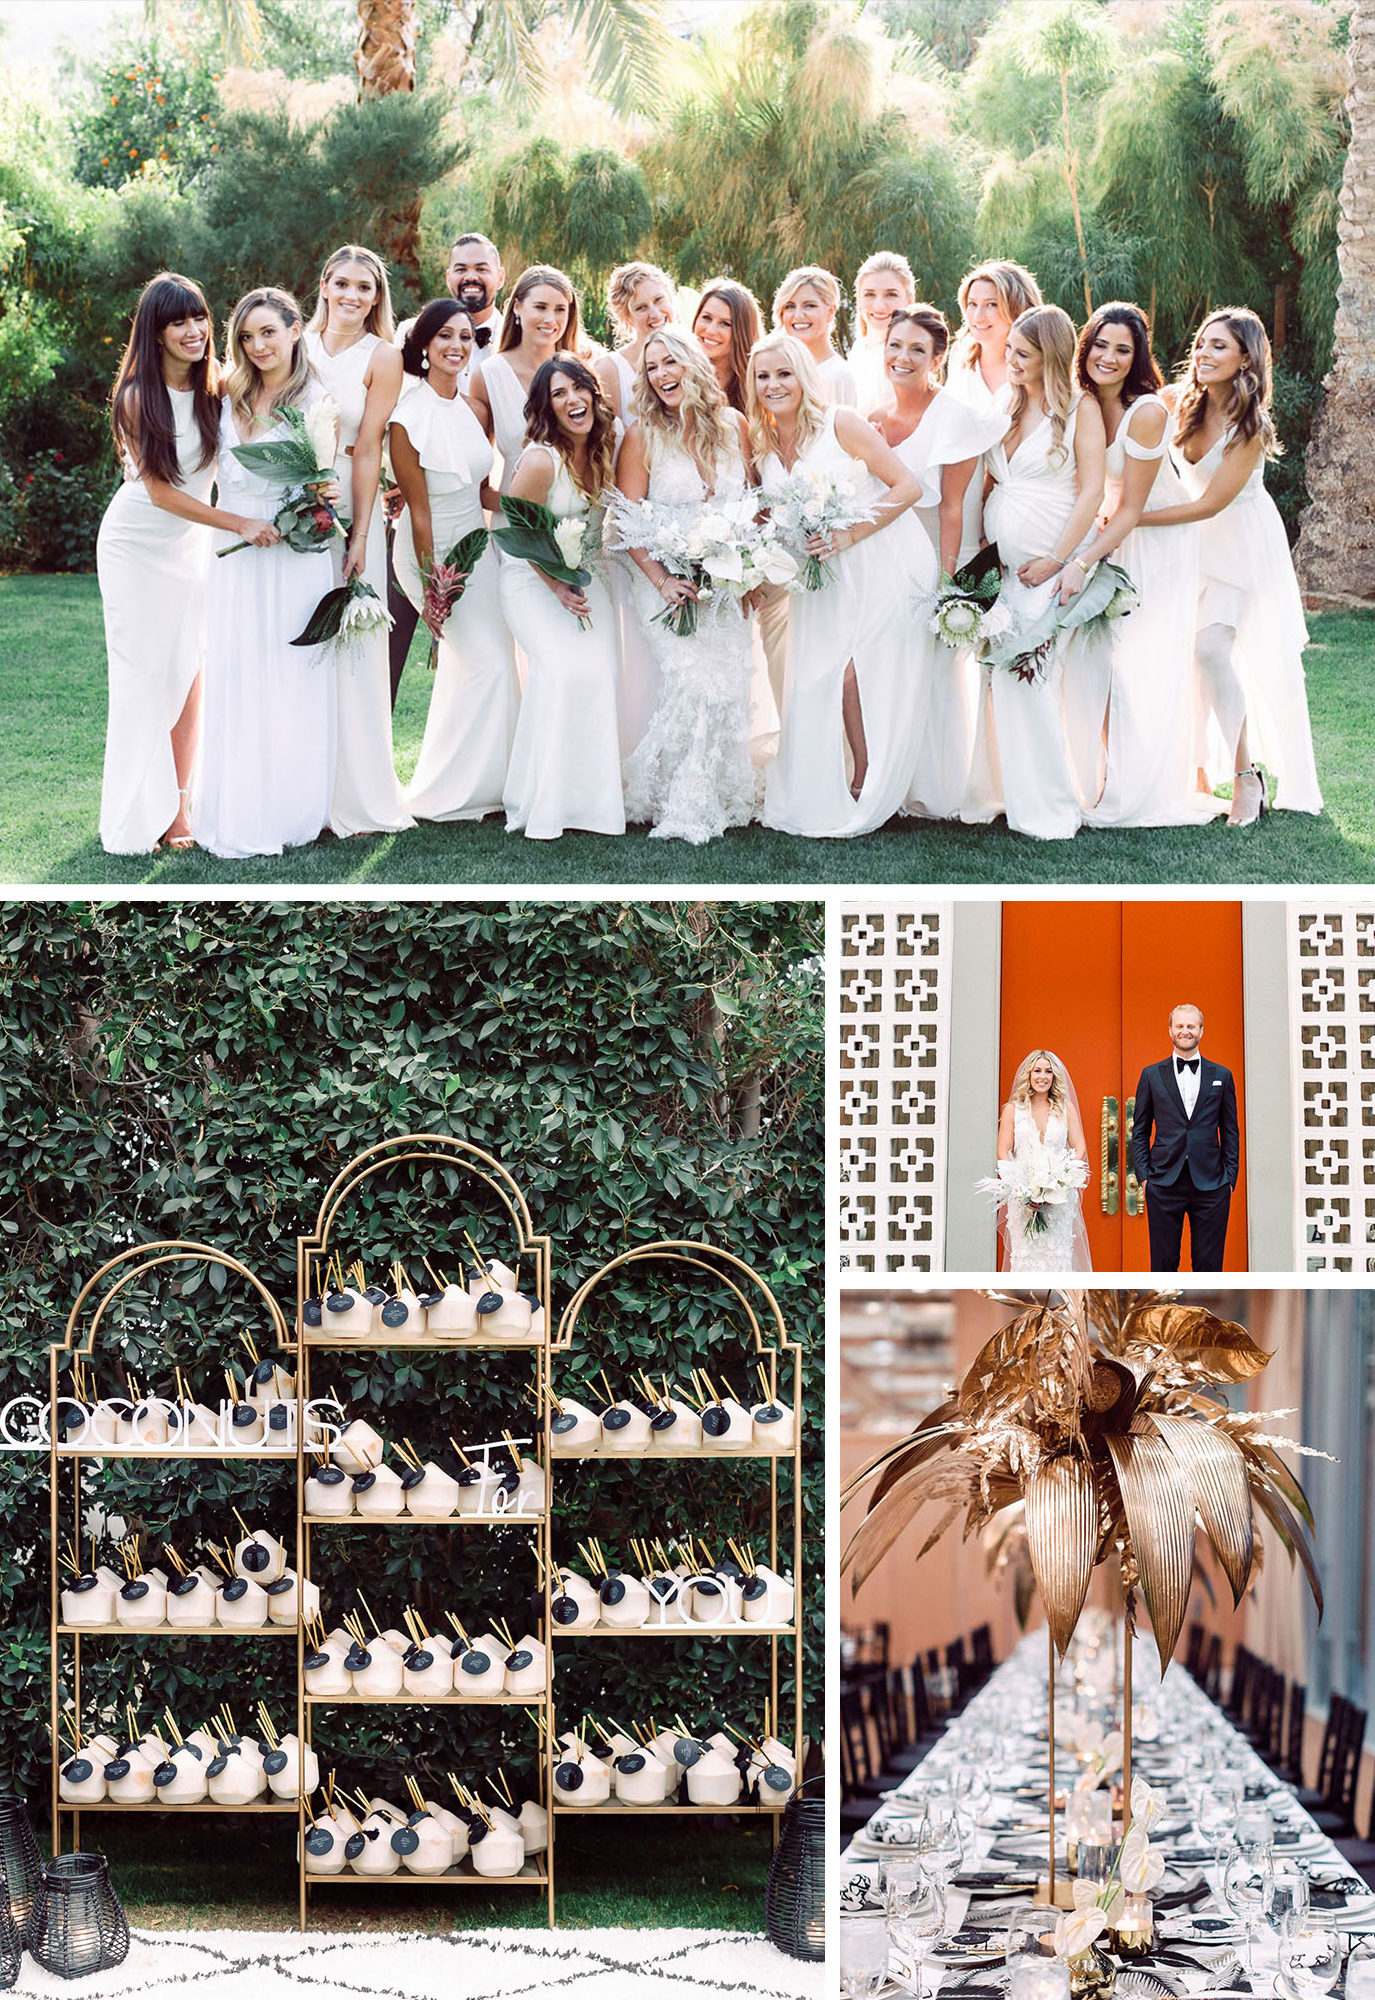 Modern Palm Springs Wedding With Bridesmaids in White